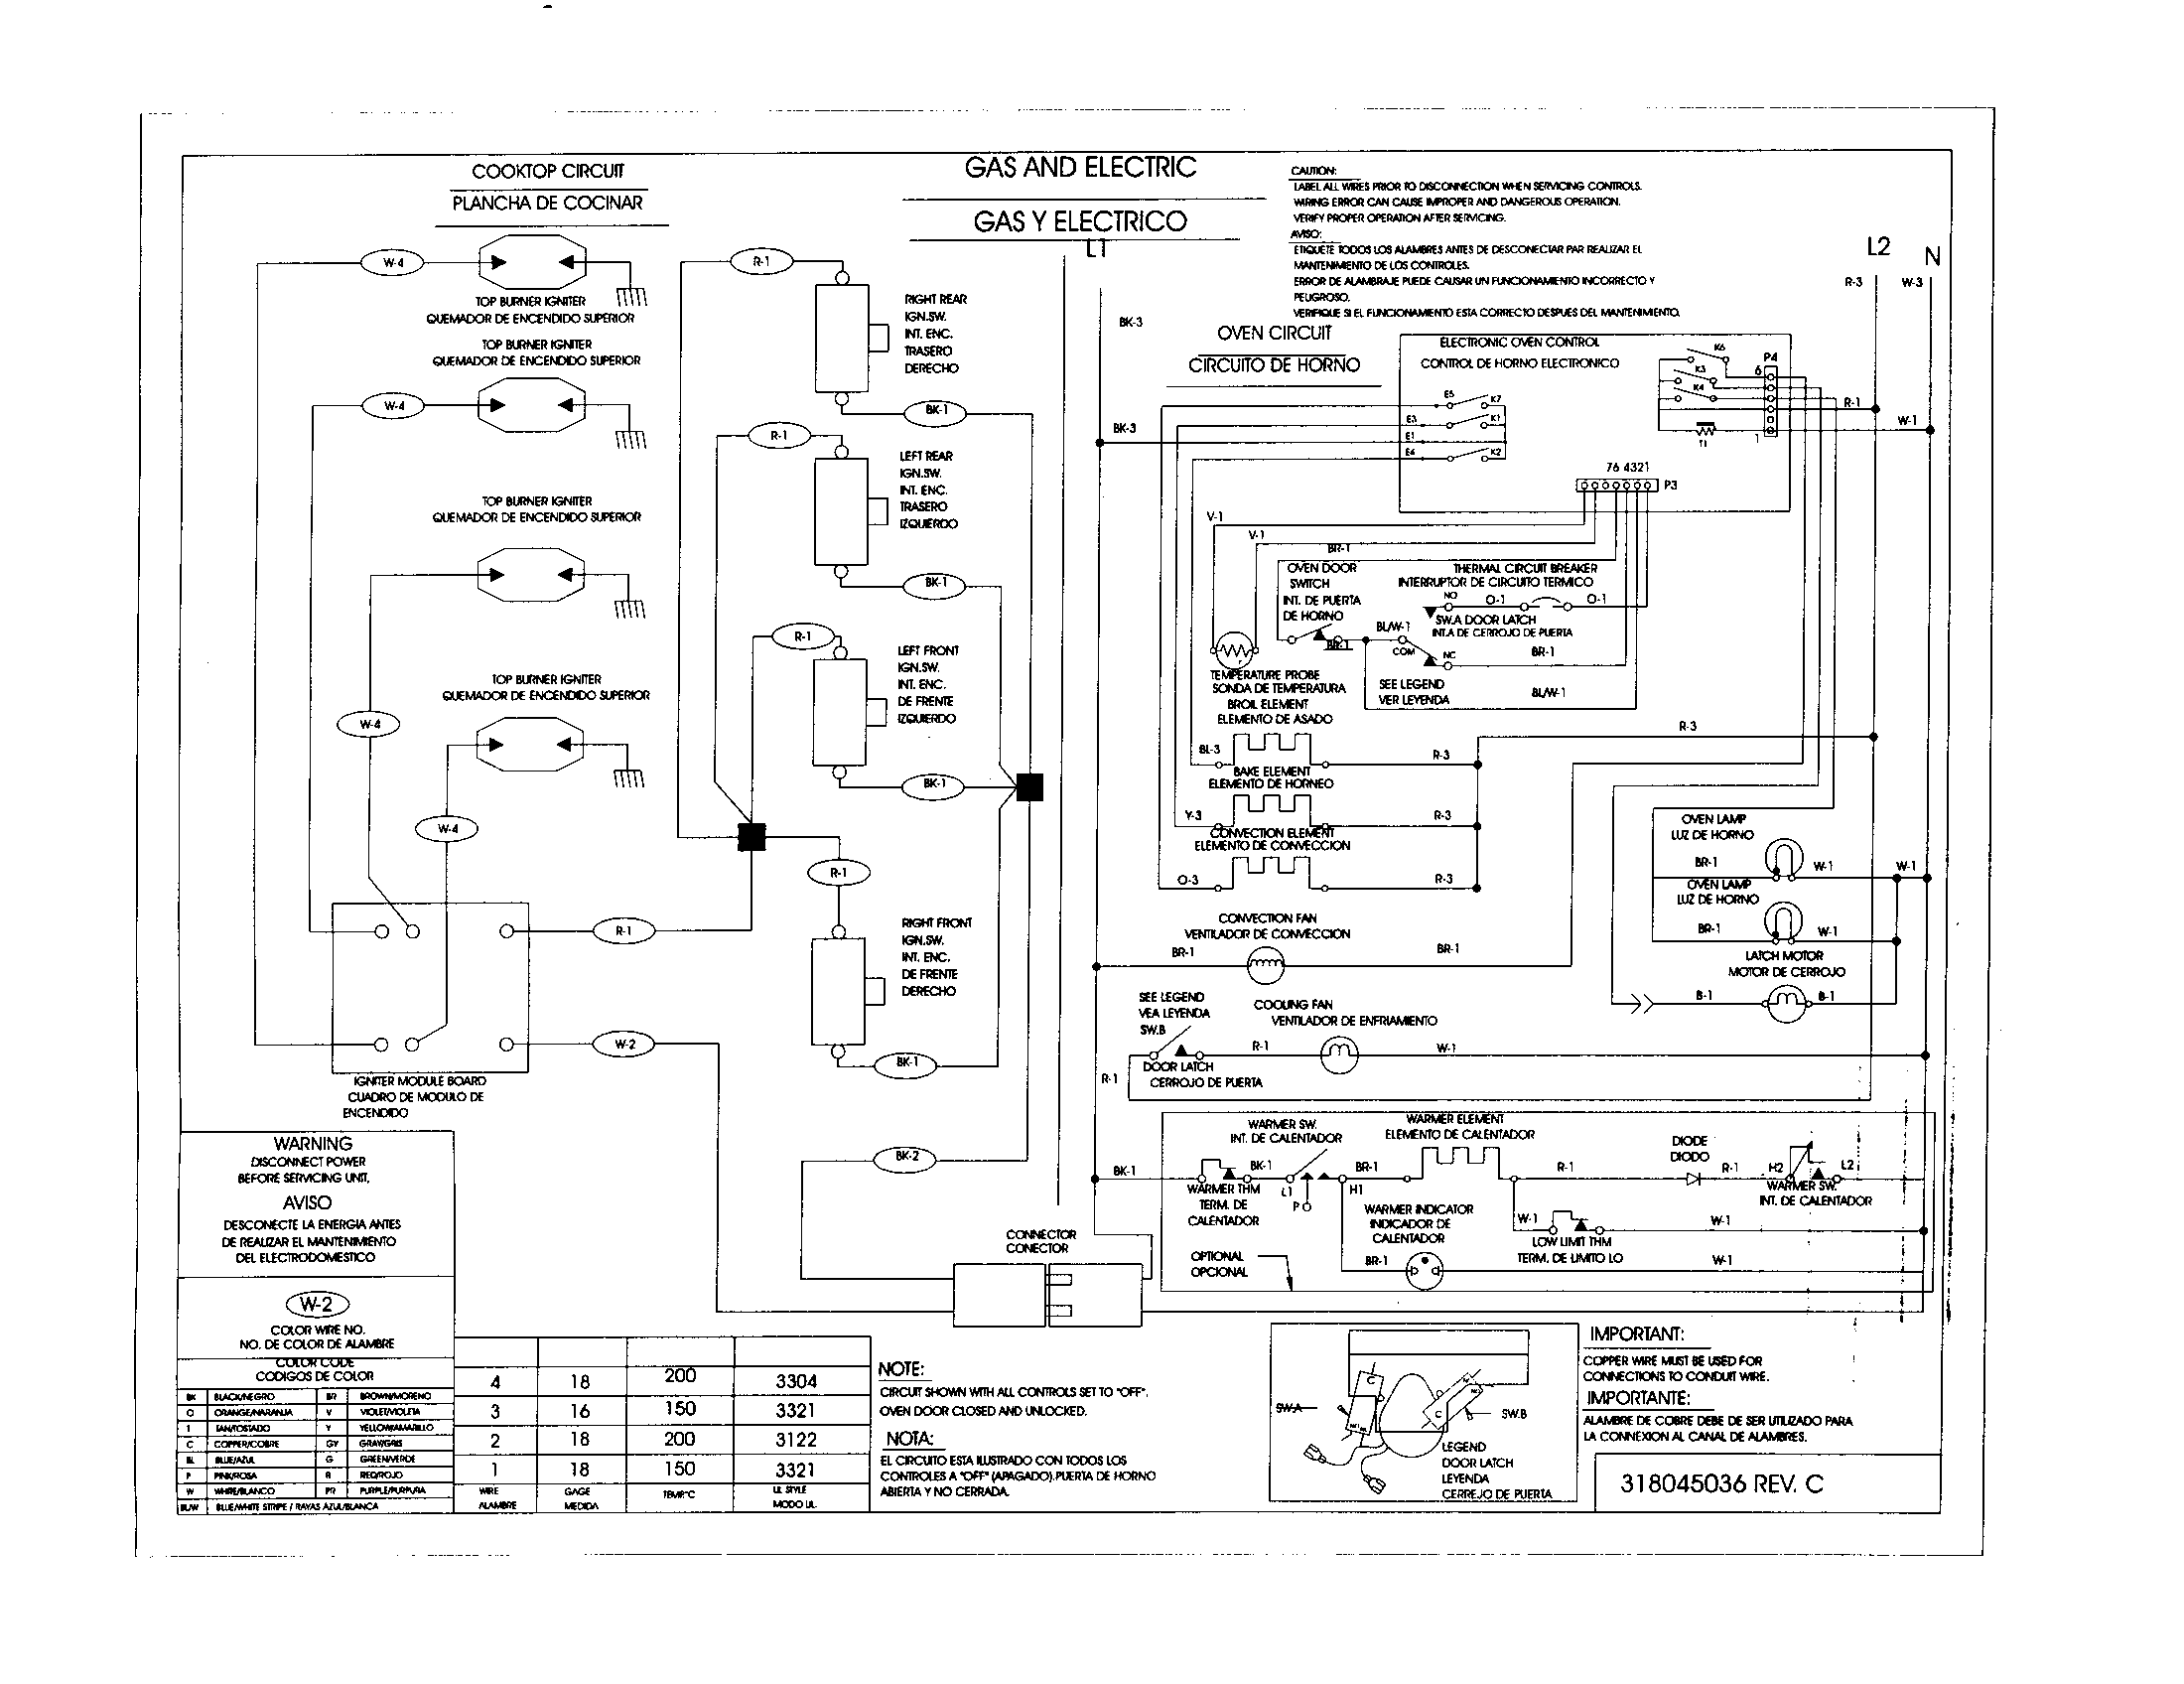 Kenmore Washer Motor Wiring Diagram Library Whirlpool Washing Machine Duet Schematics Frigidaire Clothes Dryer